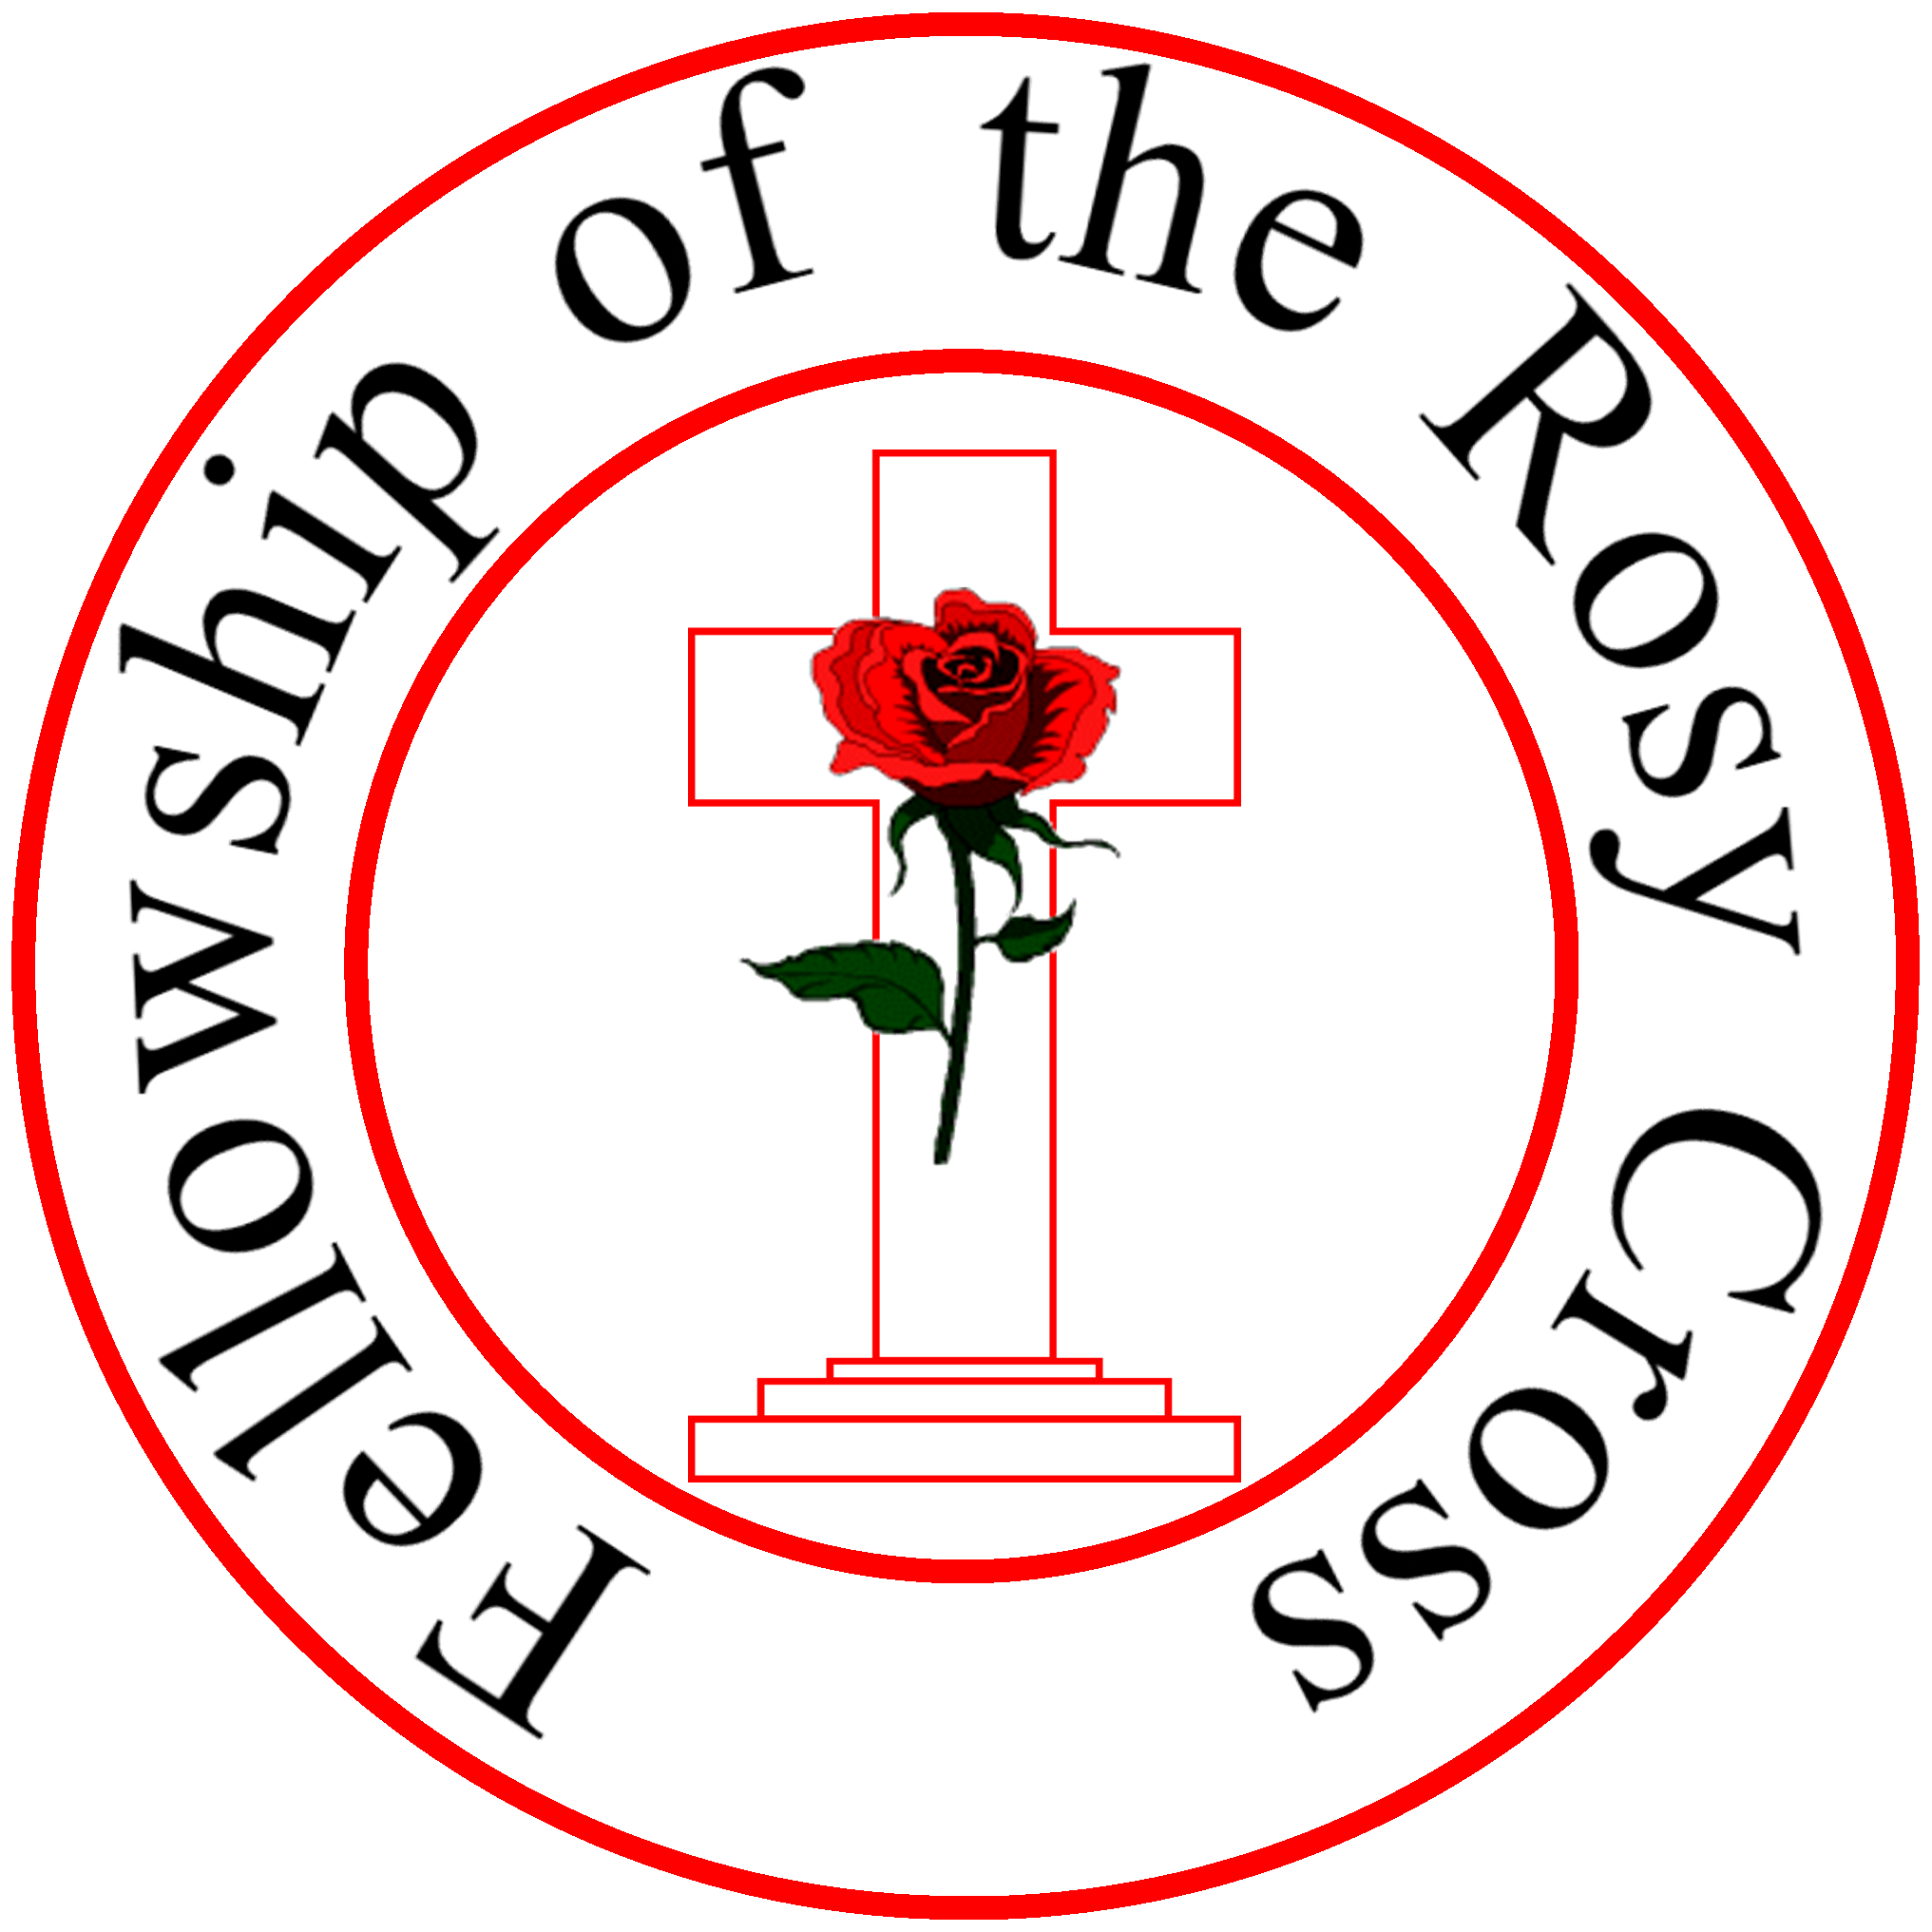 Fellowship of the Rose and Cross